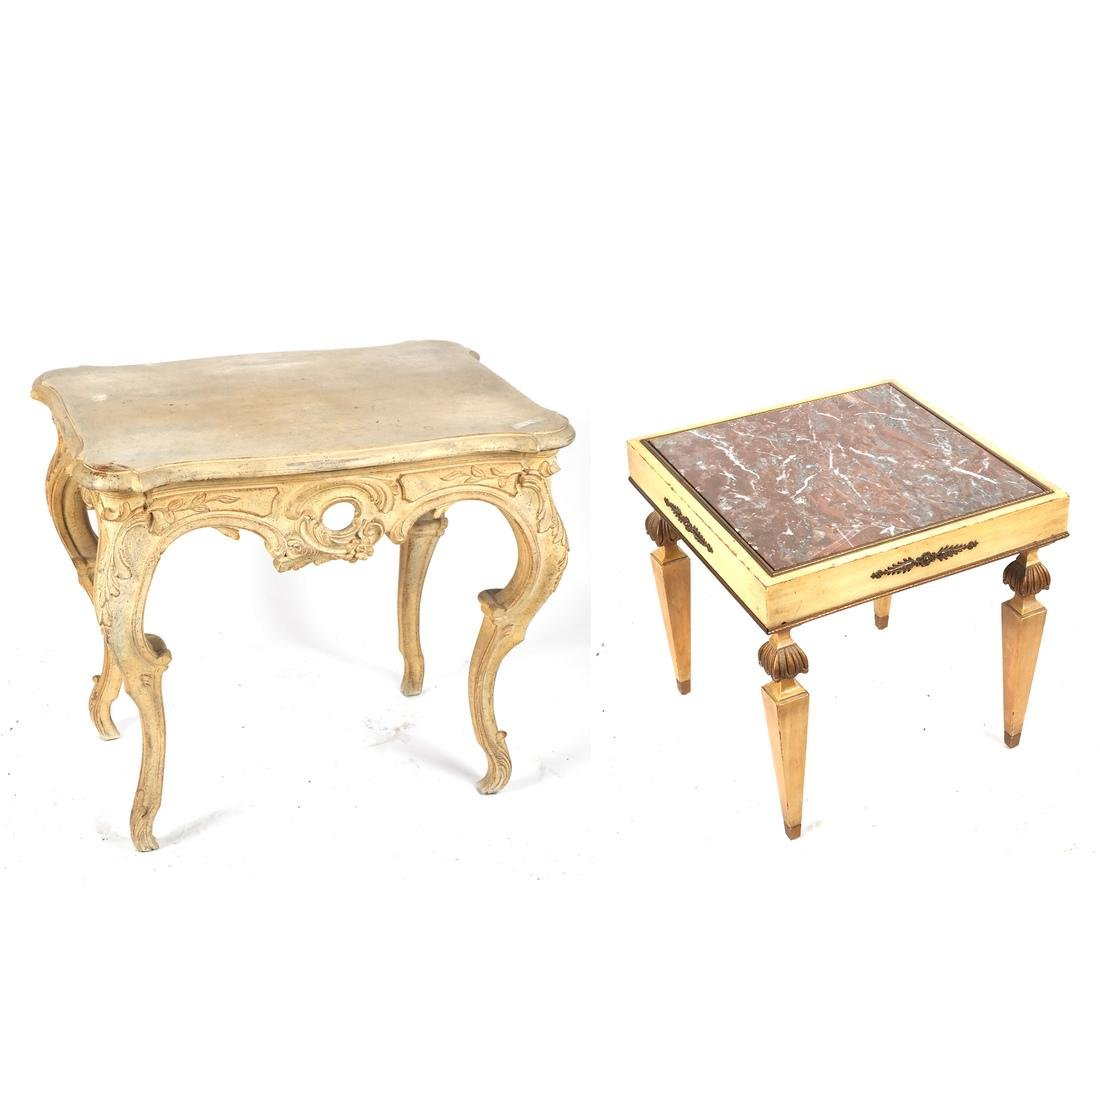 Two Decorated Tables